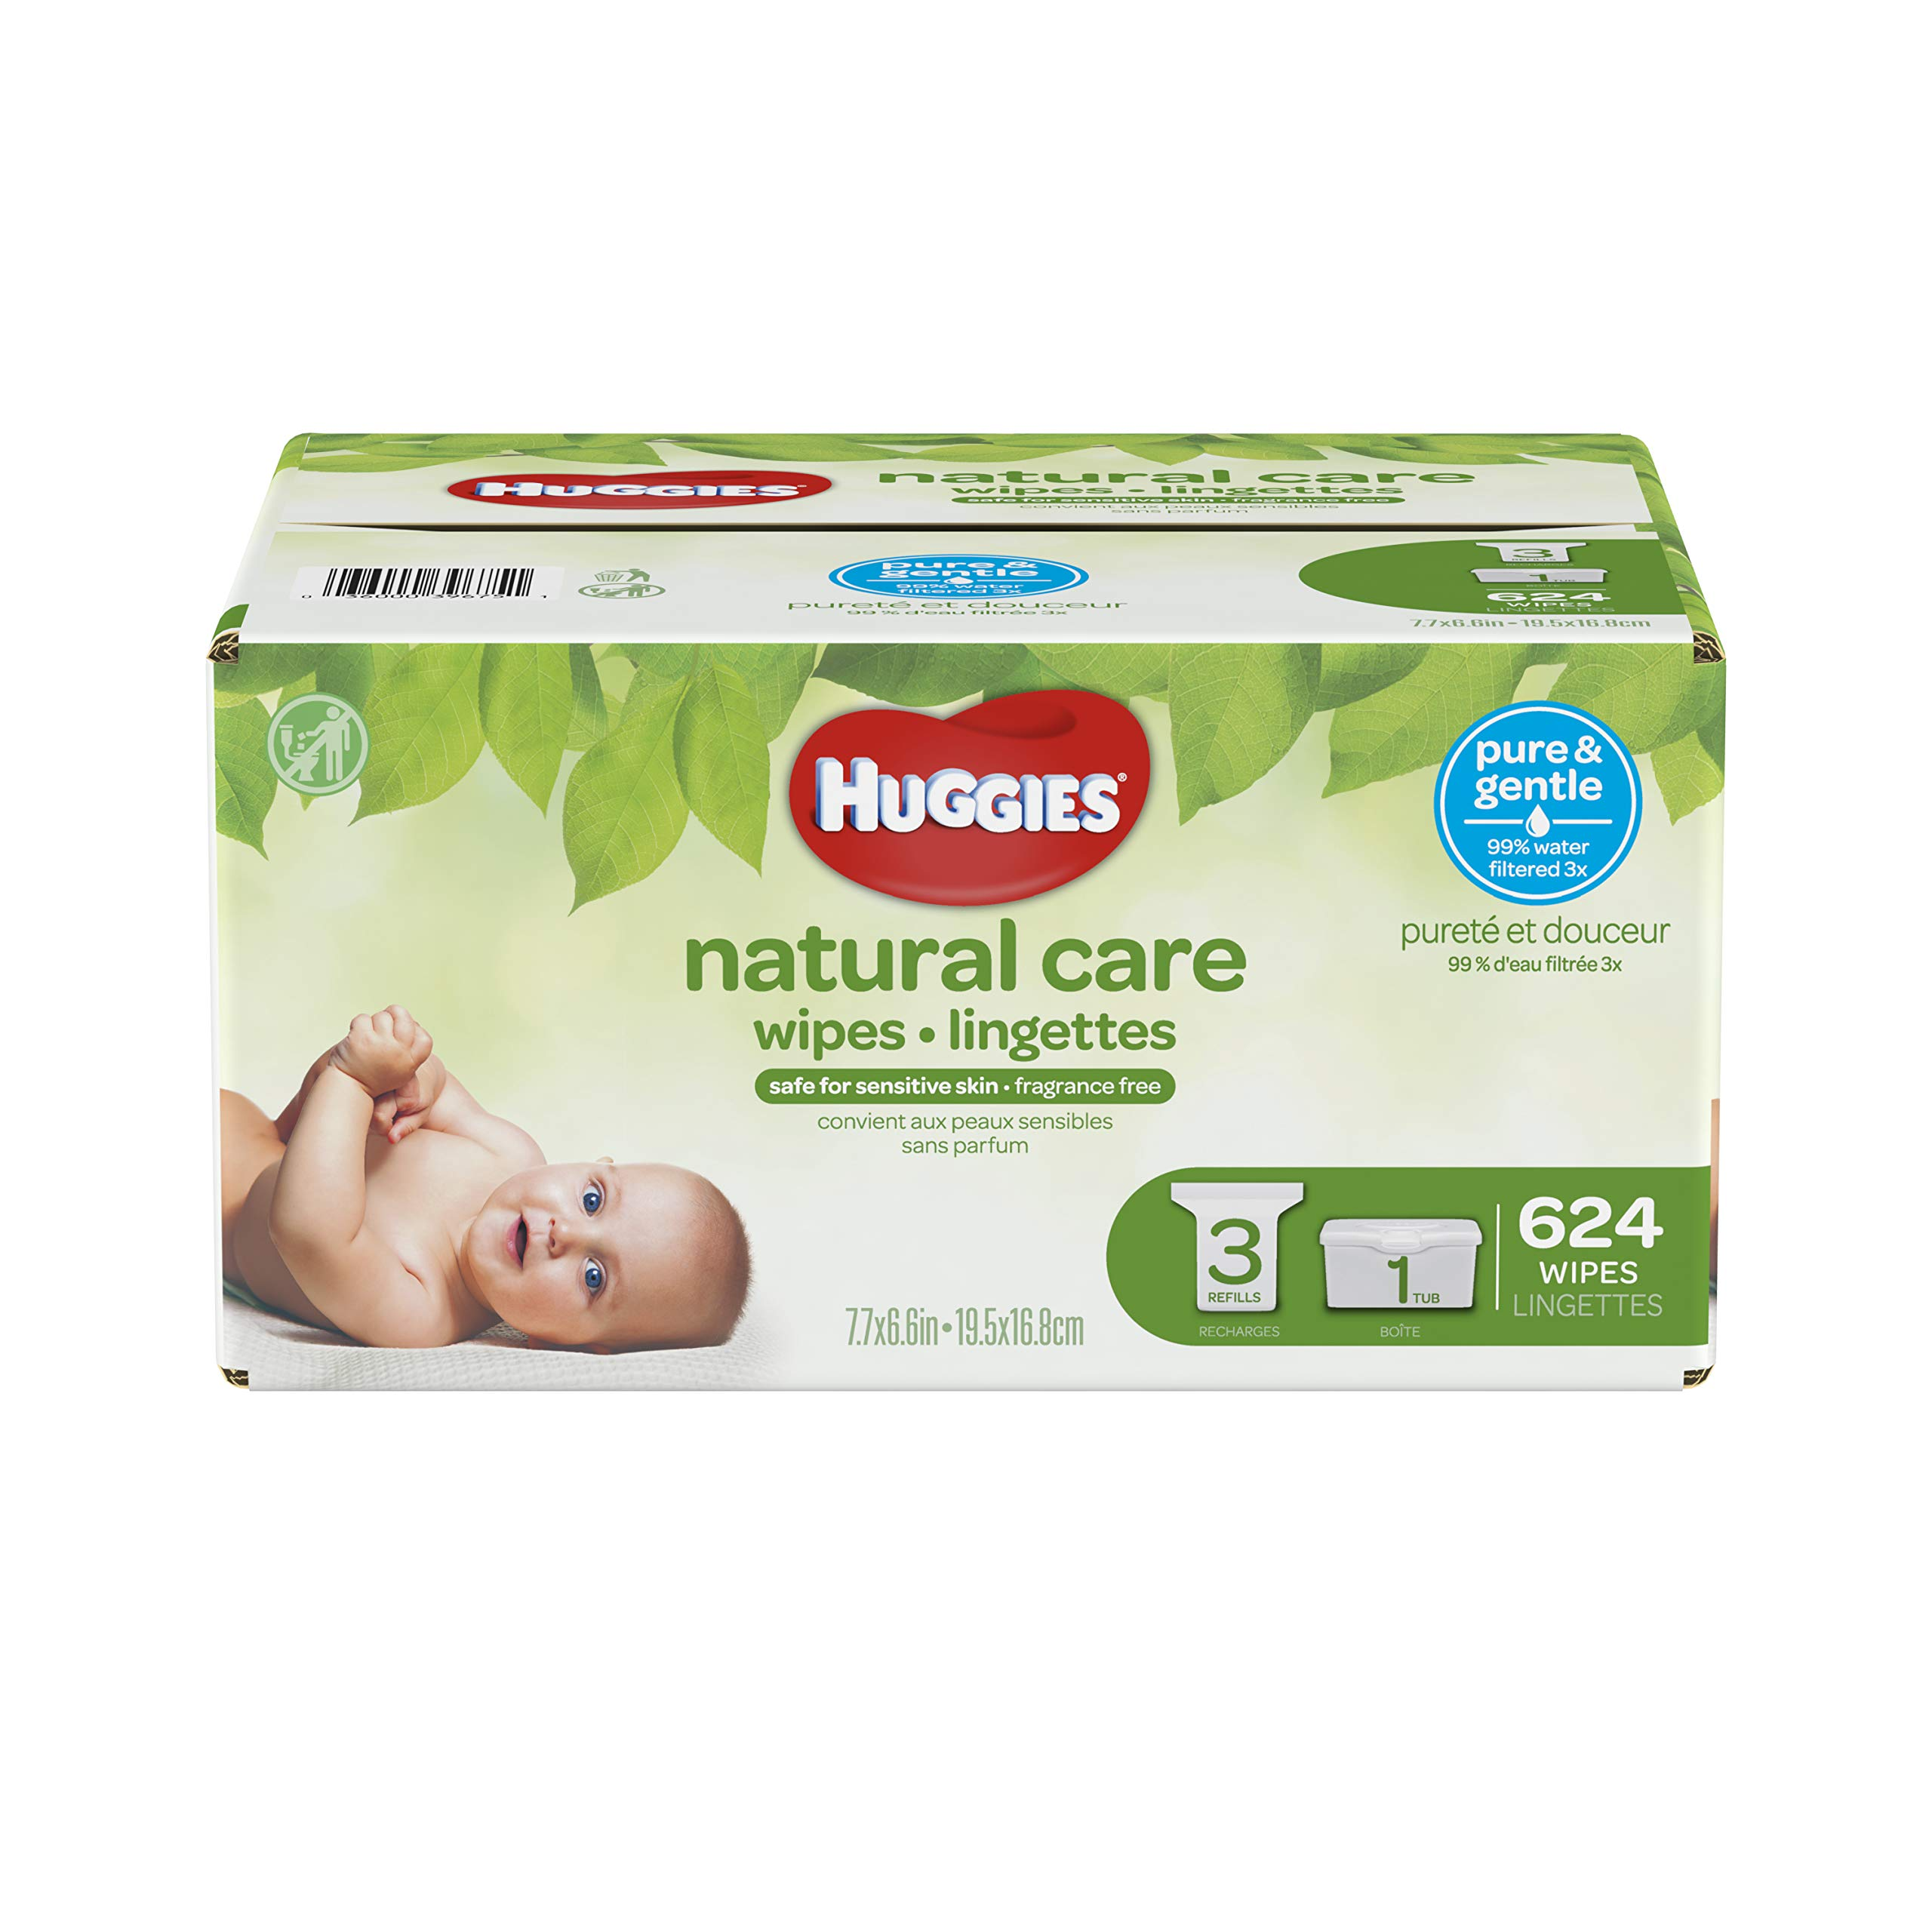 HUGGIES Natural Care Unscented Baby Wipes, Sensitive, 3 Refill Packs Plus Refillable Tub, 624 Count Total by HUGGIES